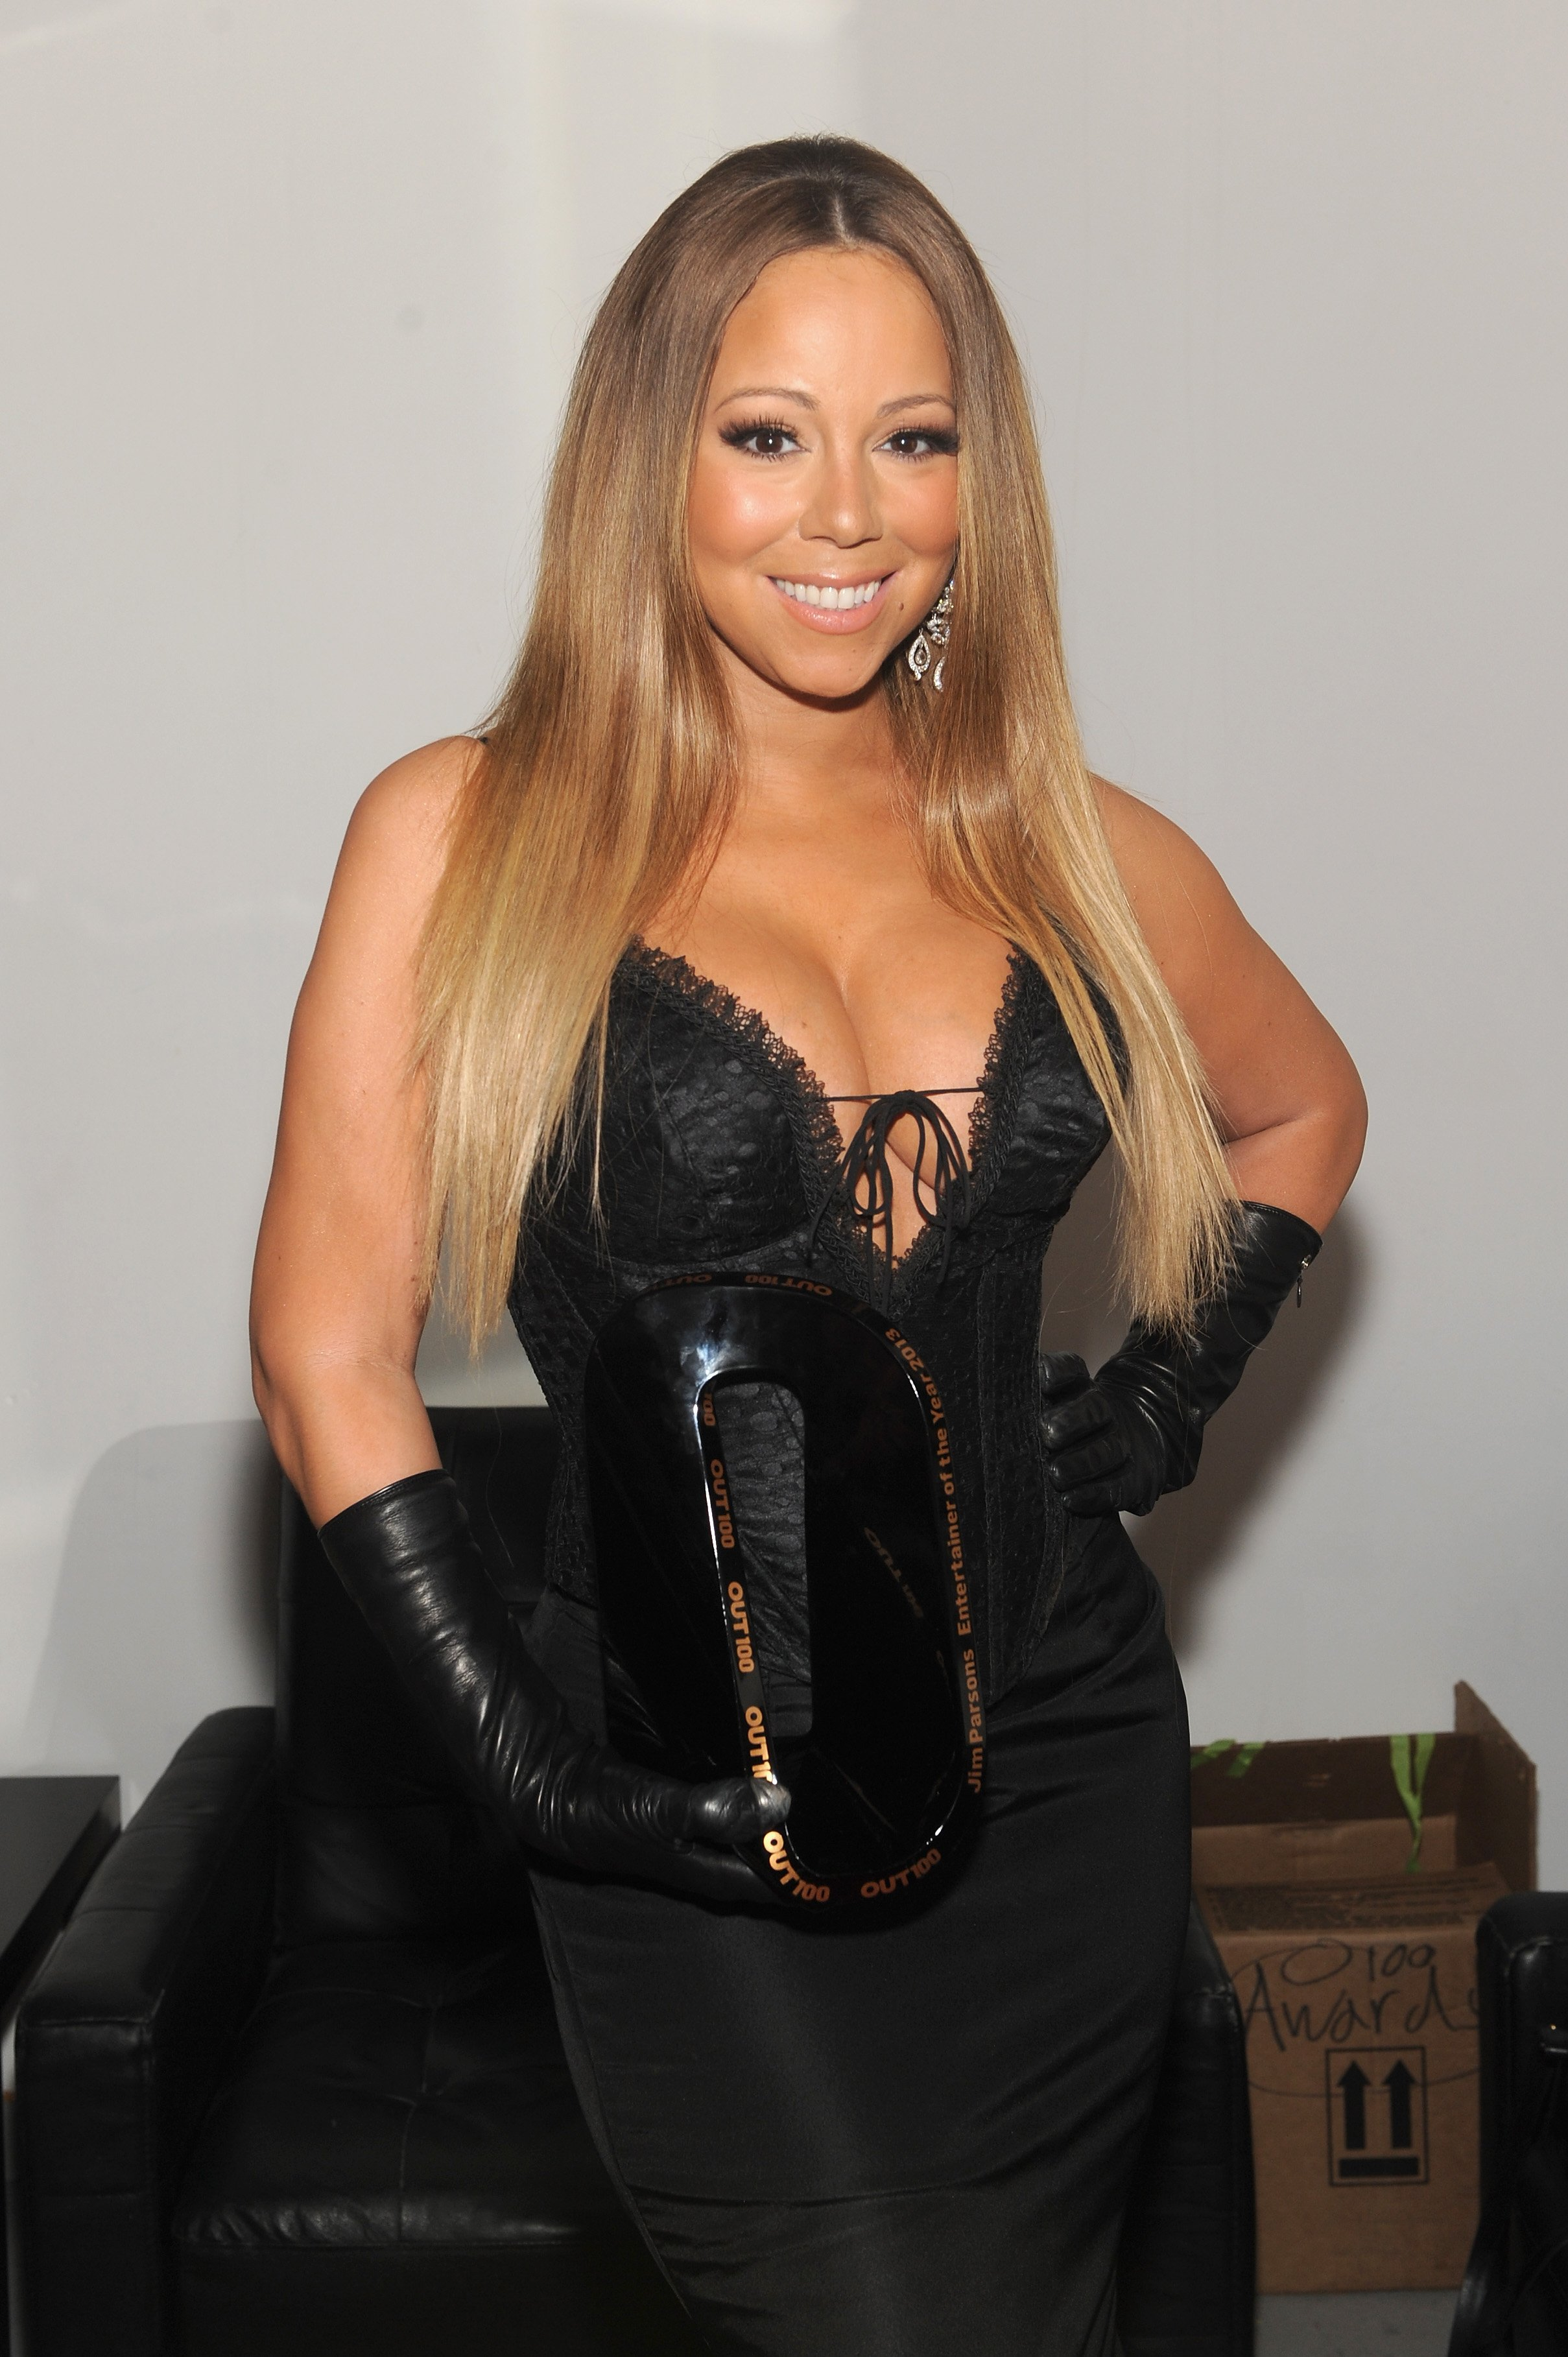 """""""Always be My Baby"""" singer Mariah Carey attends 2013 Annual Out100 Awards in New York City. 